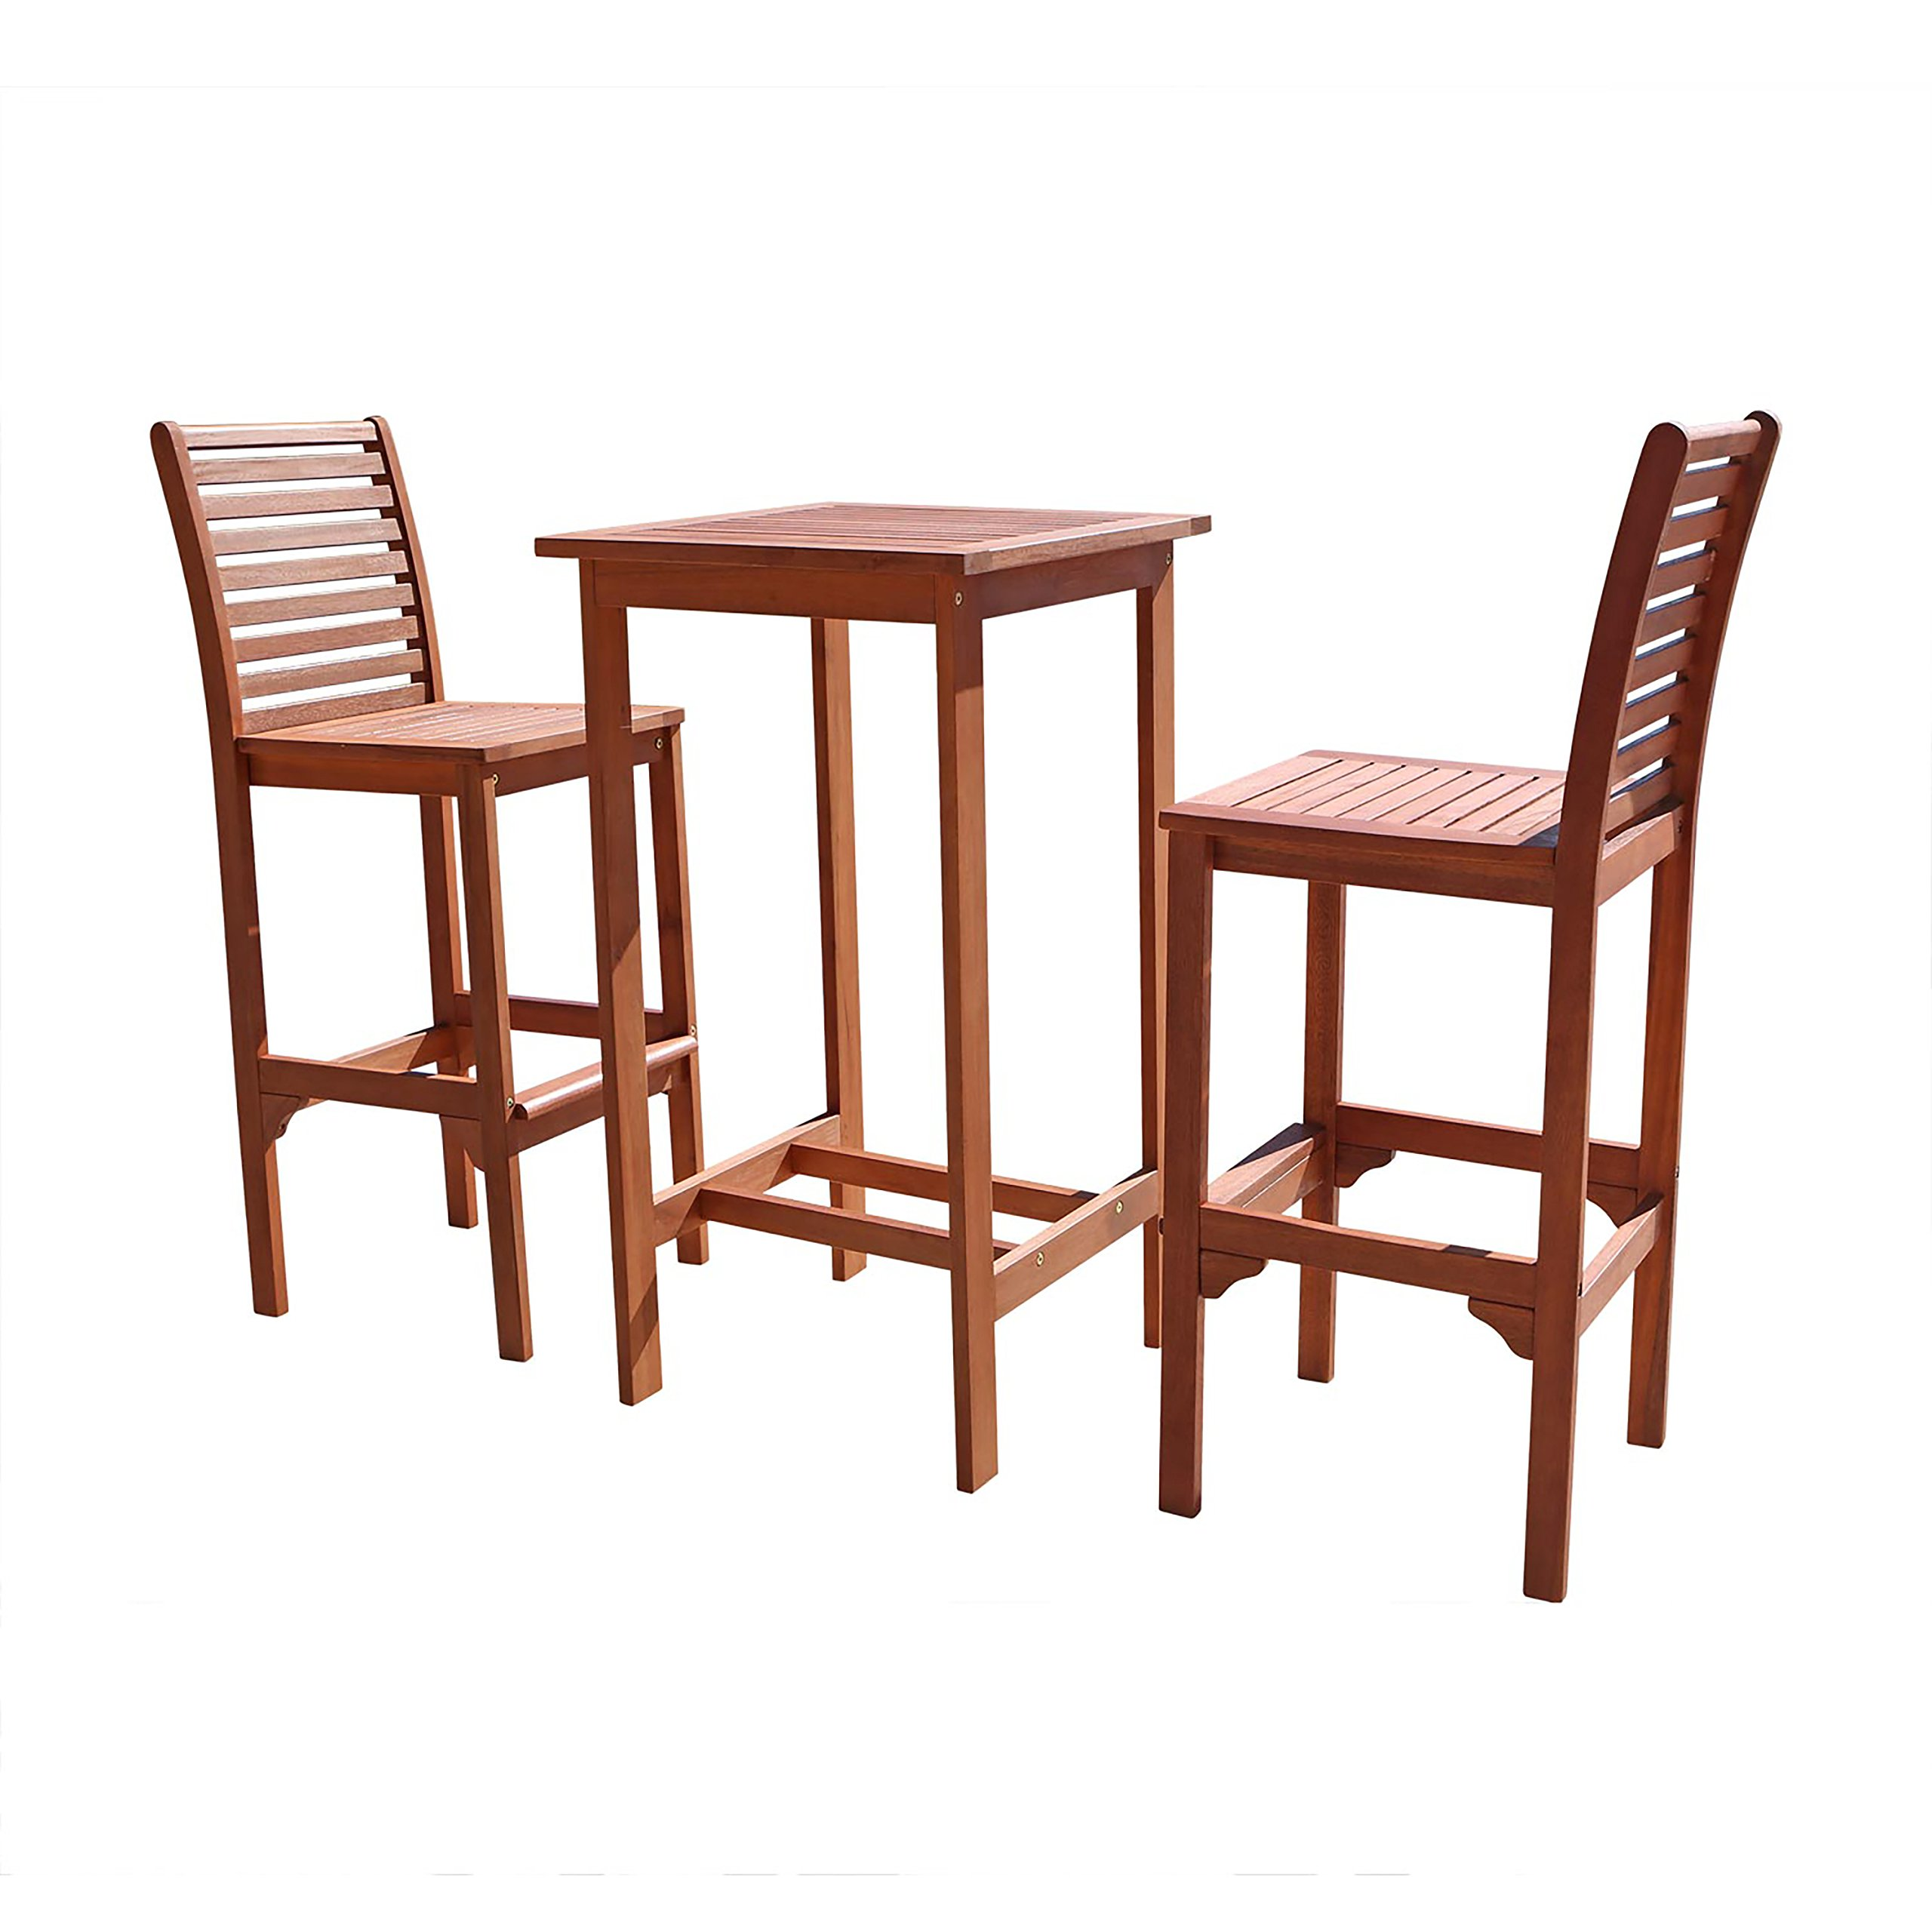 VIFAH V495SET1 Dartmoor Outdoor 3-Piece Wood Bar Set with Bar Table and 2 Bar Chairs